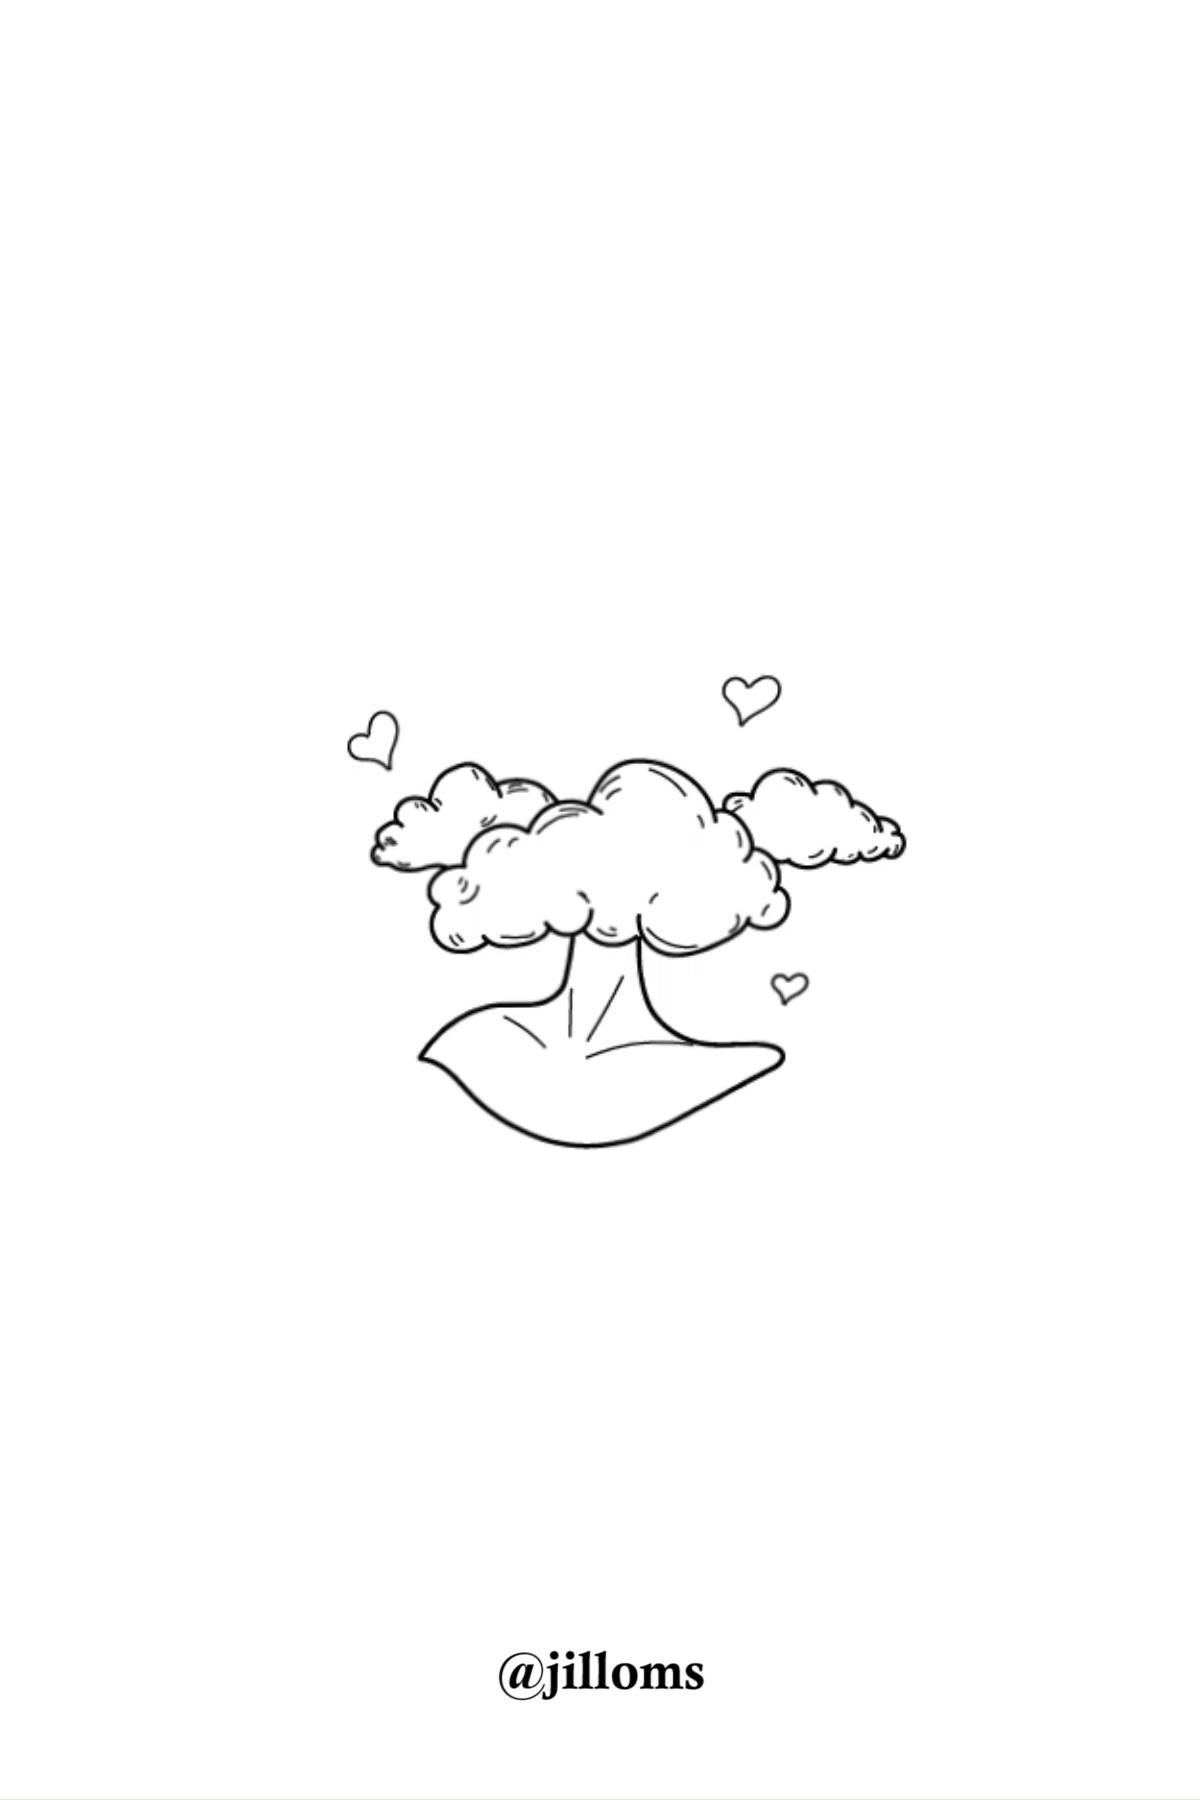 Minimalist Drawing of Head in the Clouds